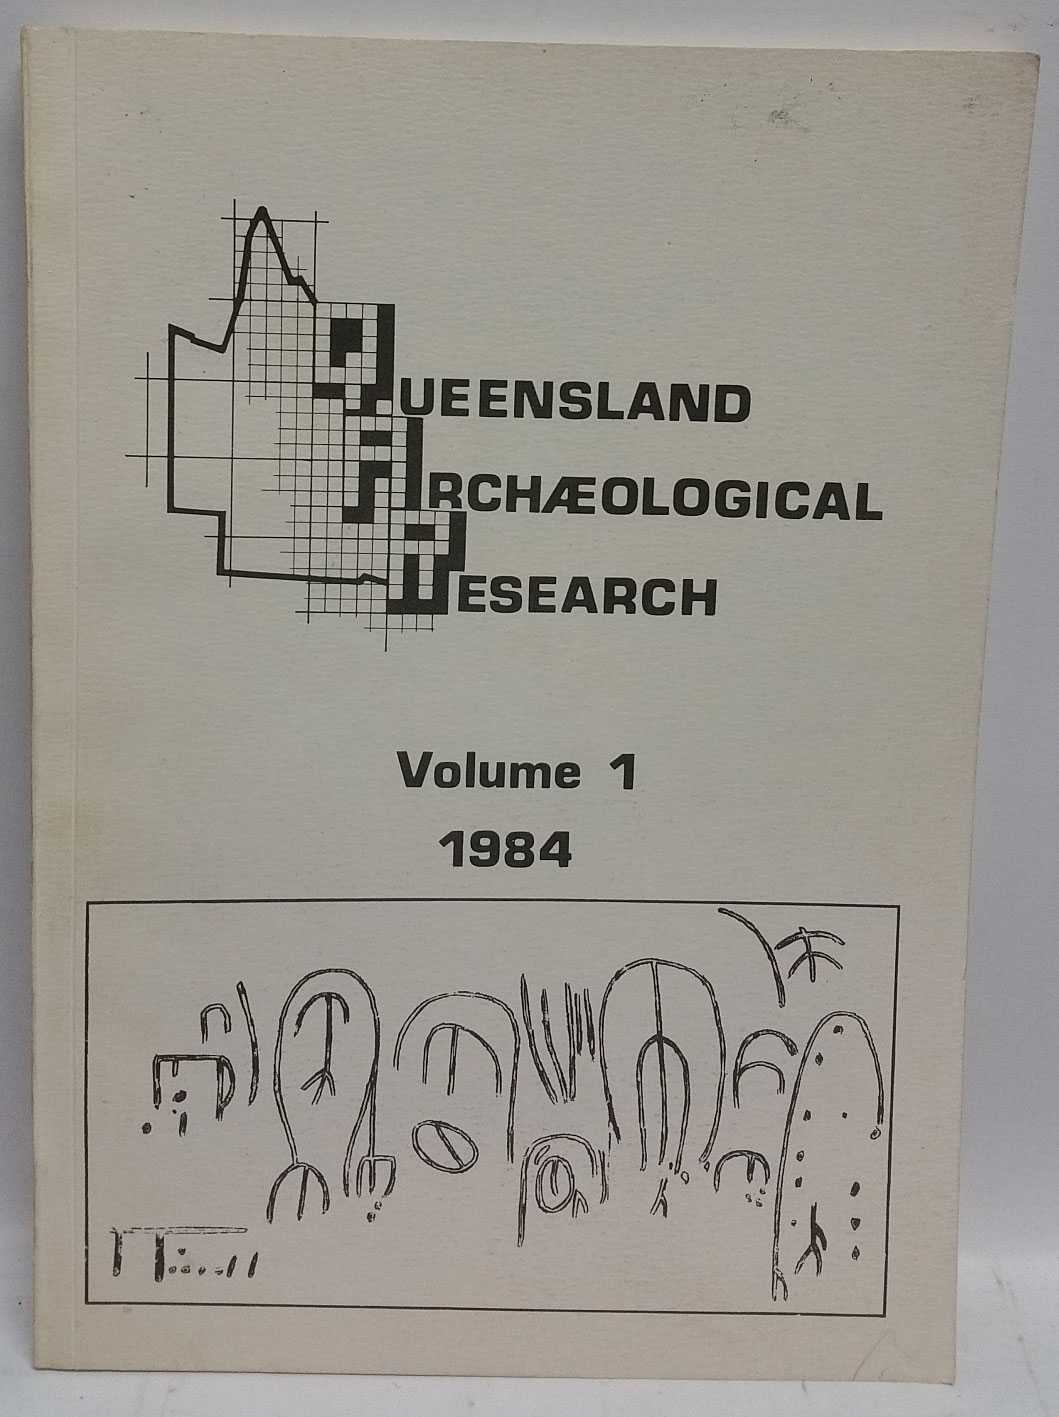 Queensland Archaeological Research Volume 1, 1984, H. J. Hall